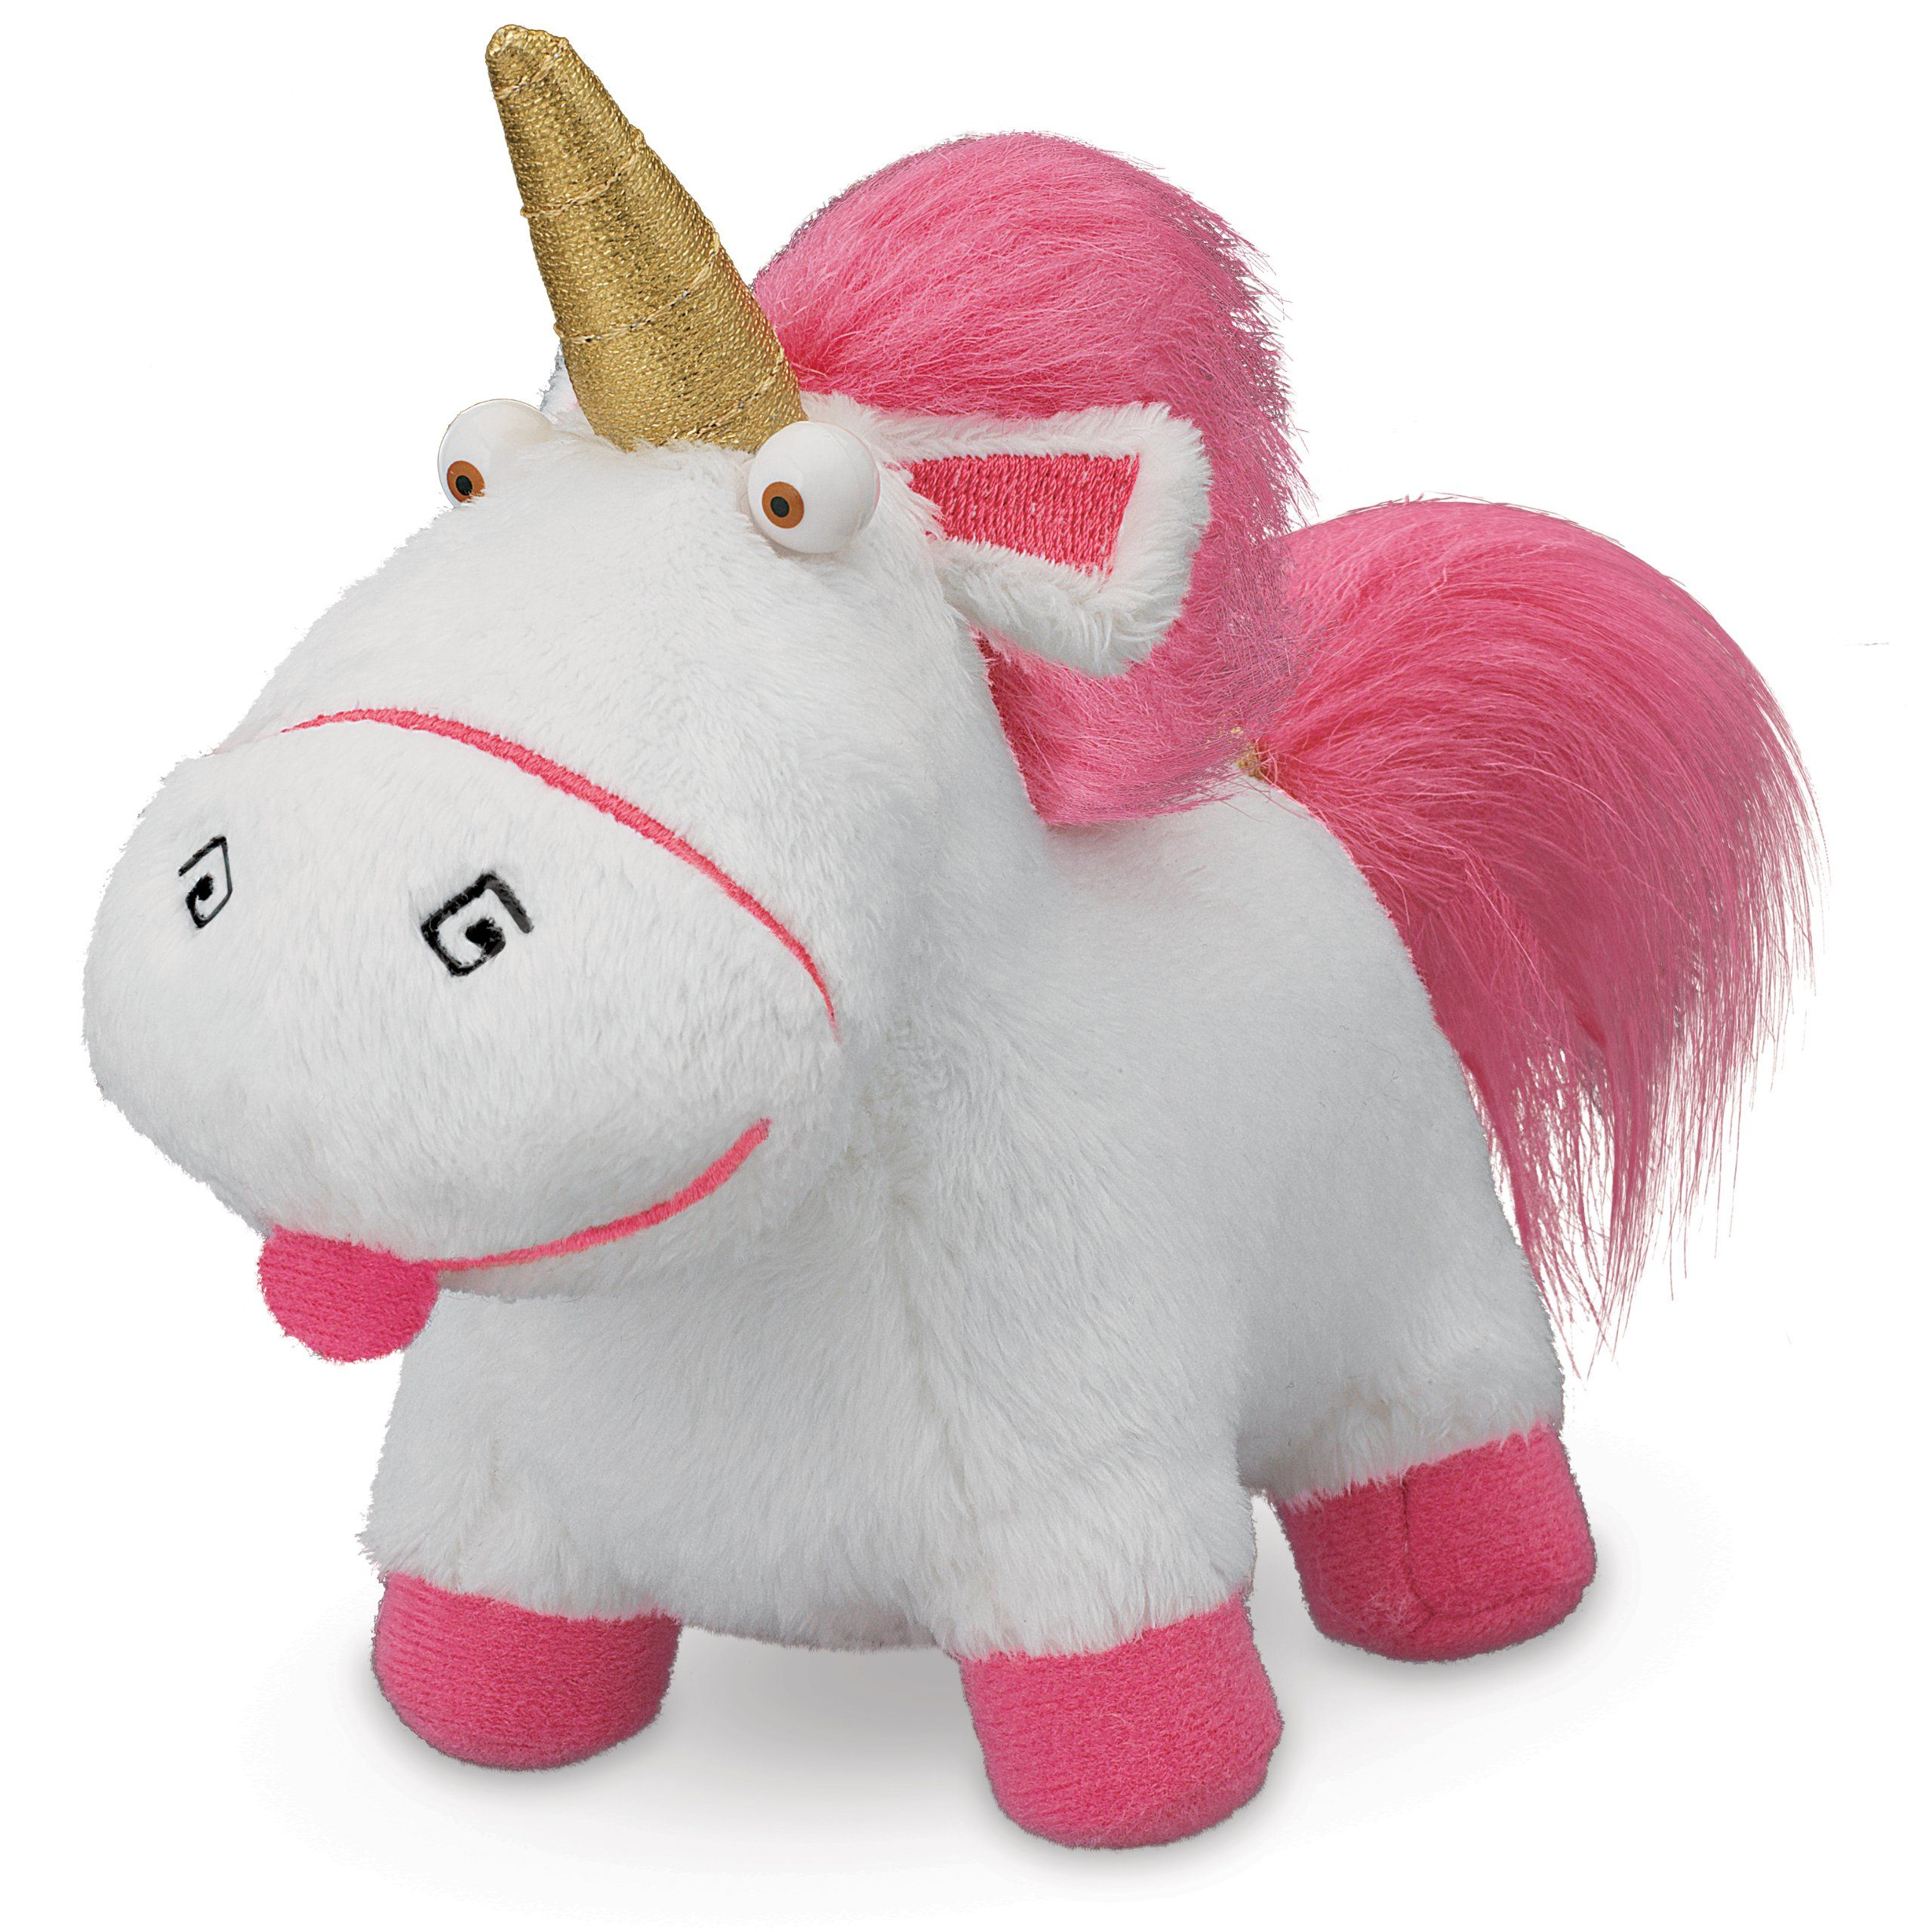 Minion Bettwäsche Real Despicable Me Fluffy Unicorn Cuddly Toys I Want